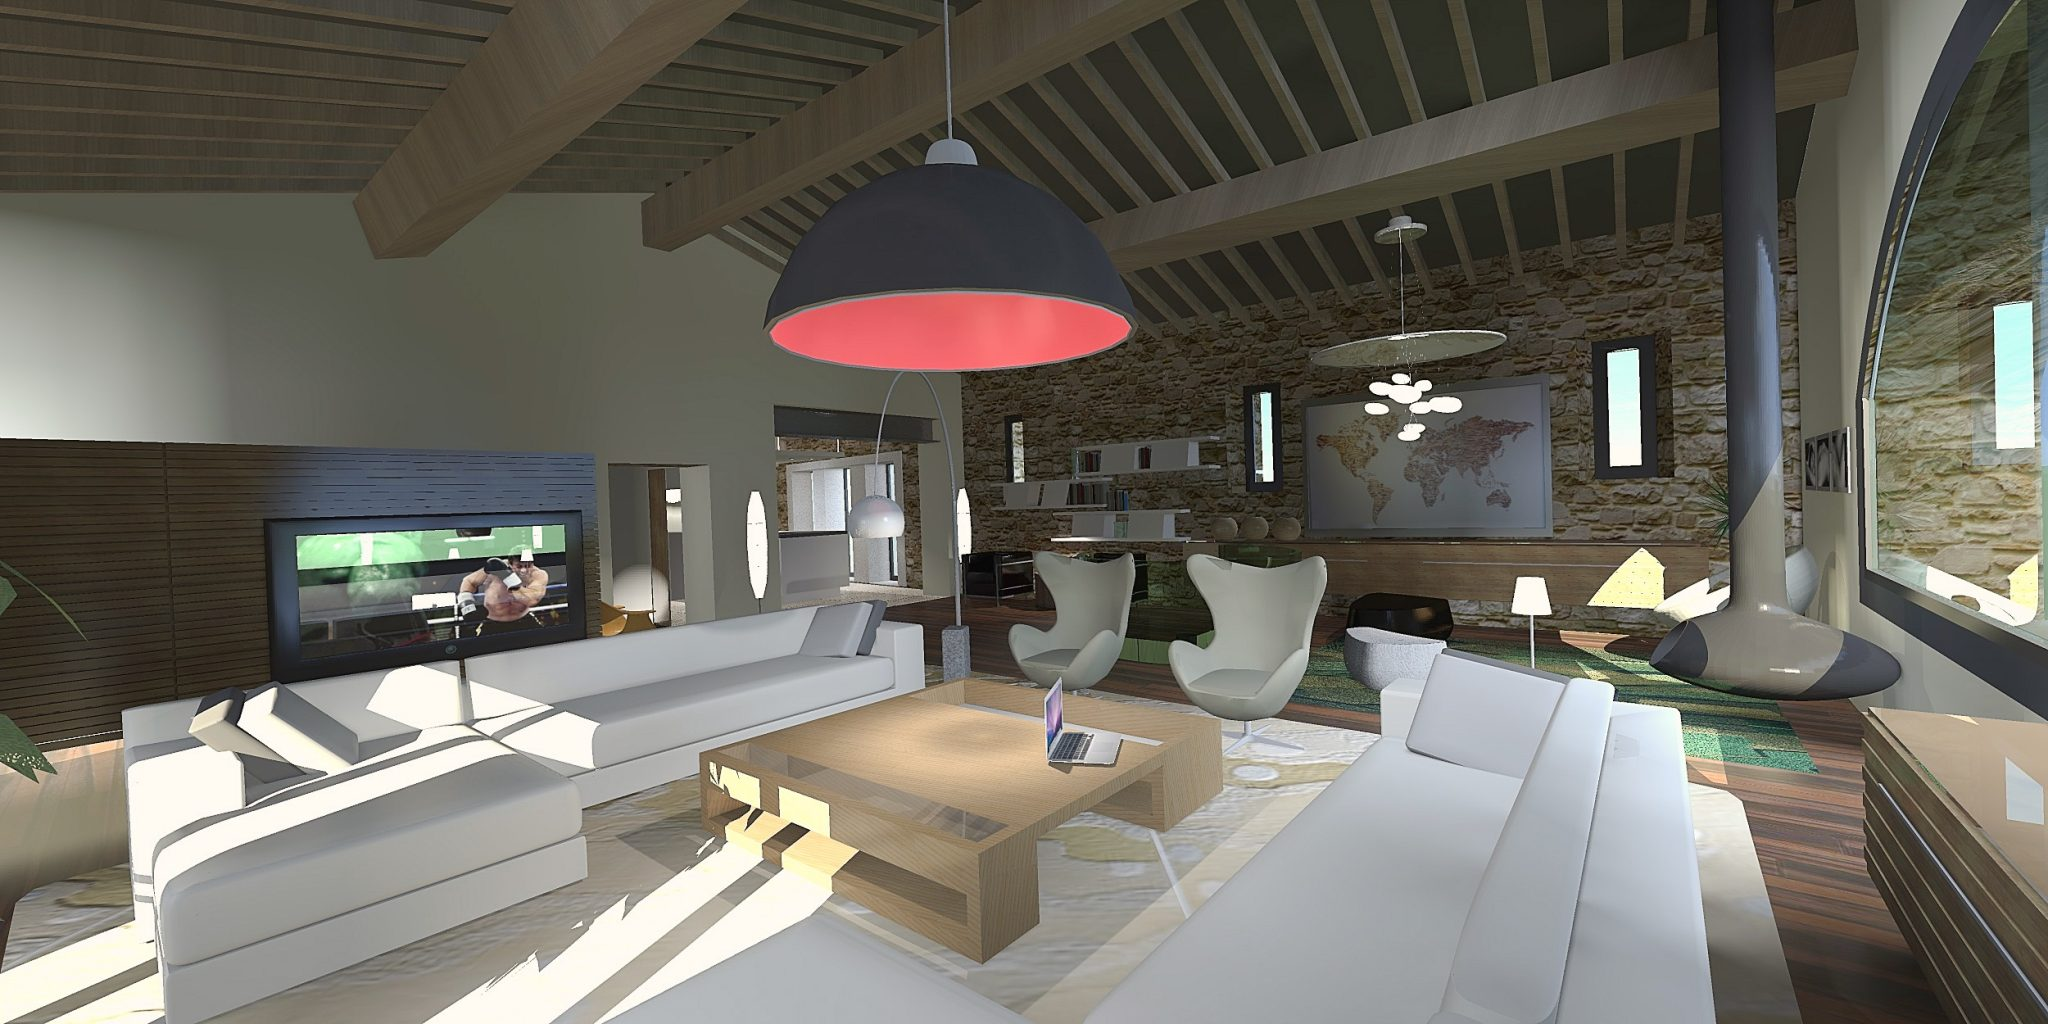 3D perspective interieur design